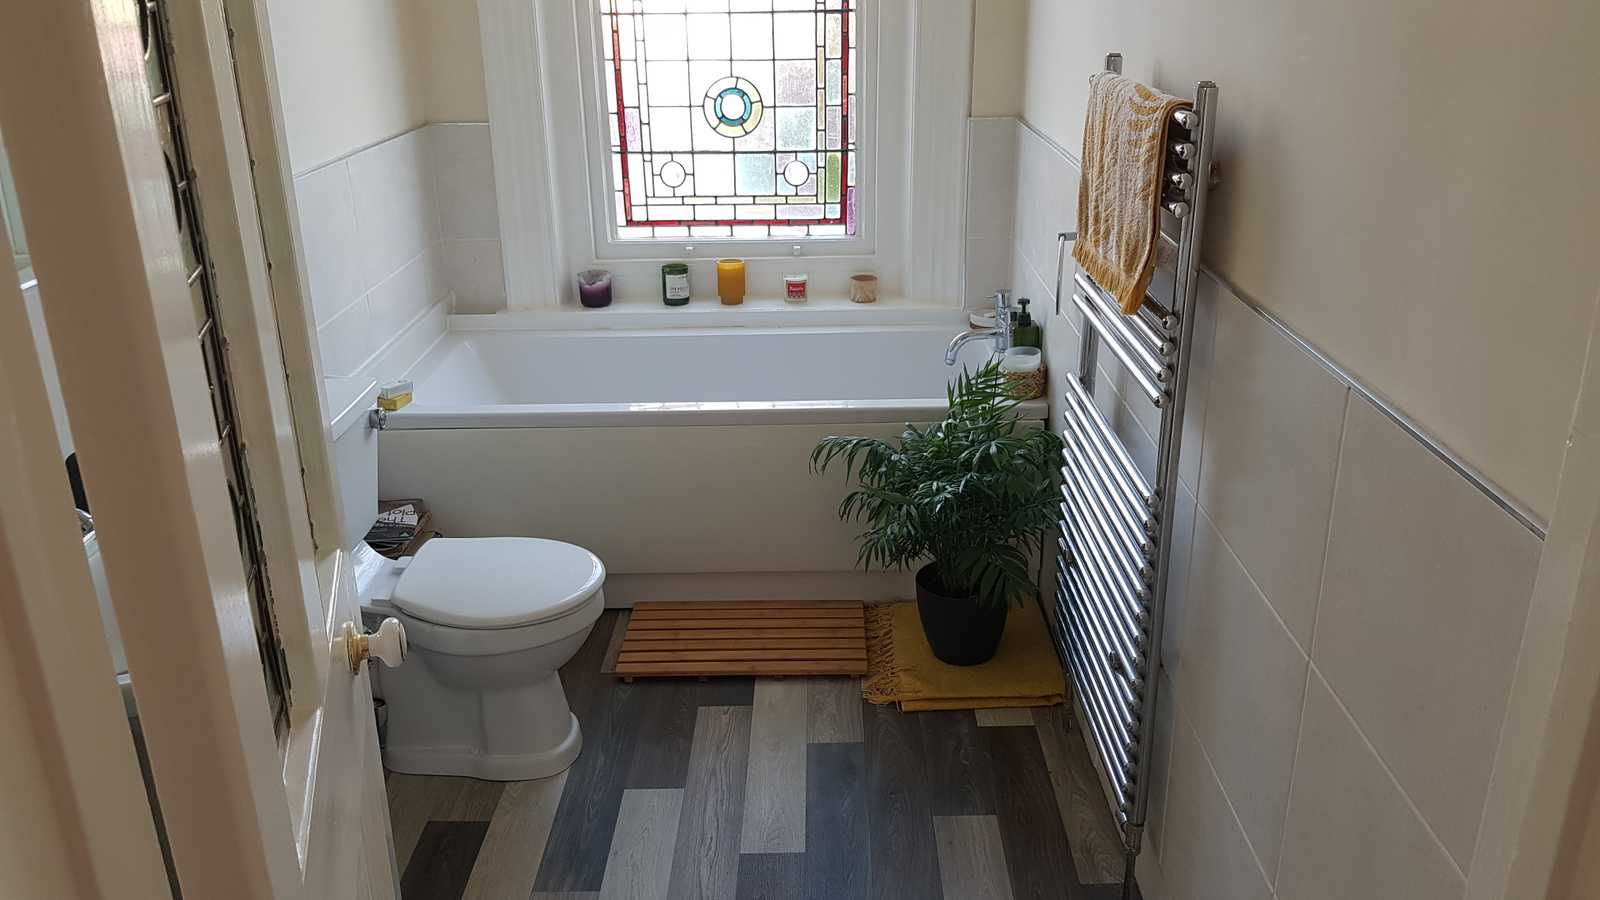 Bathroom with stained glass window